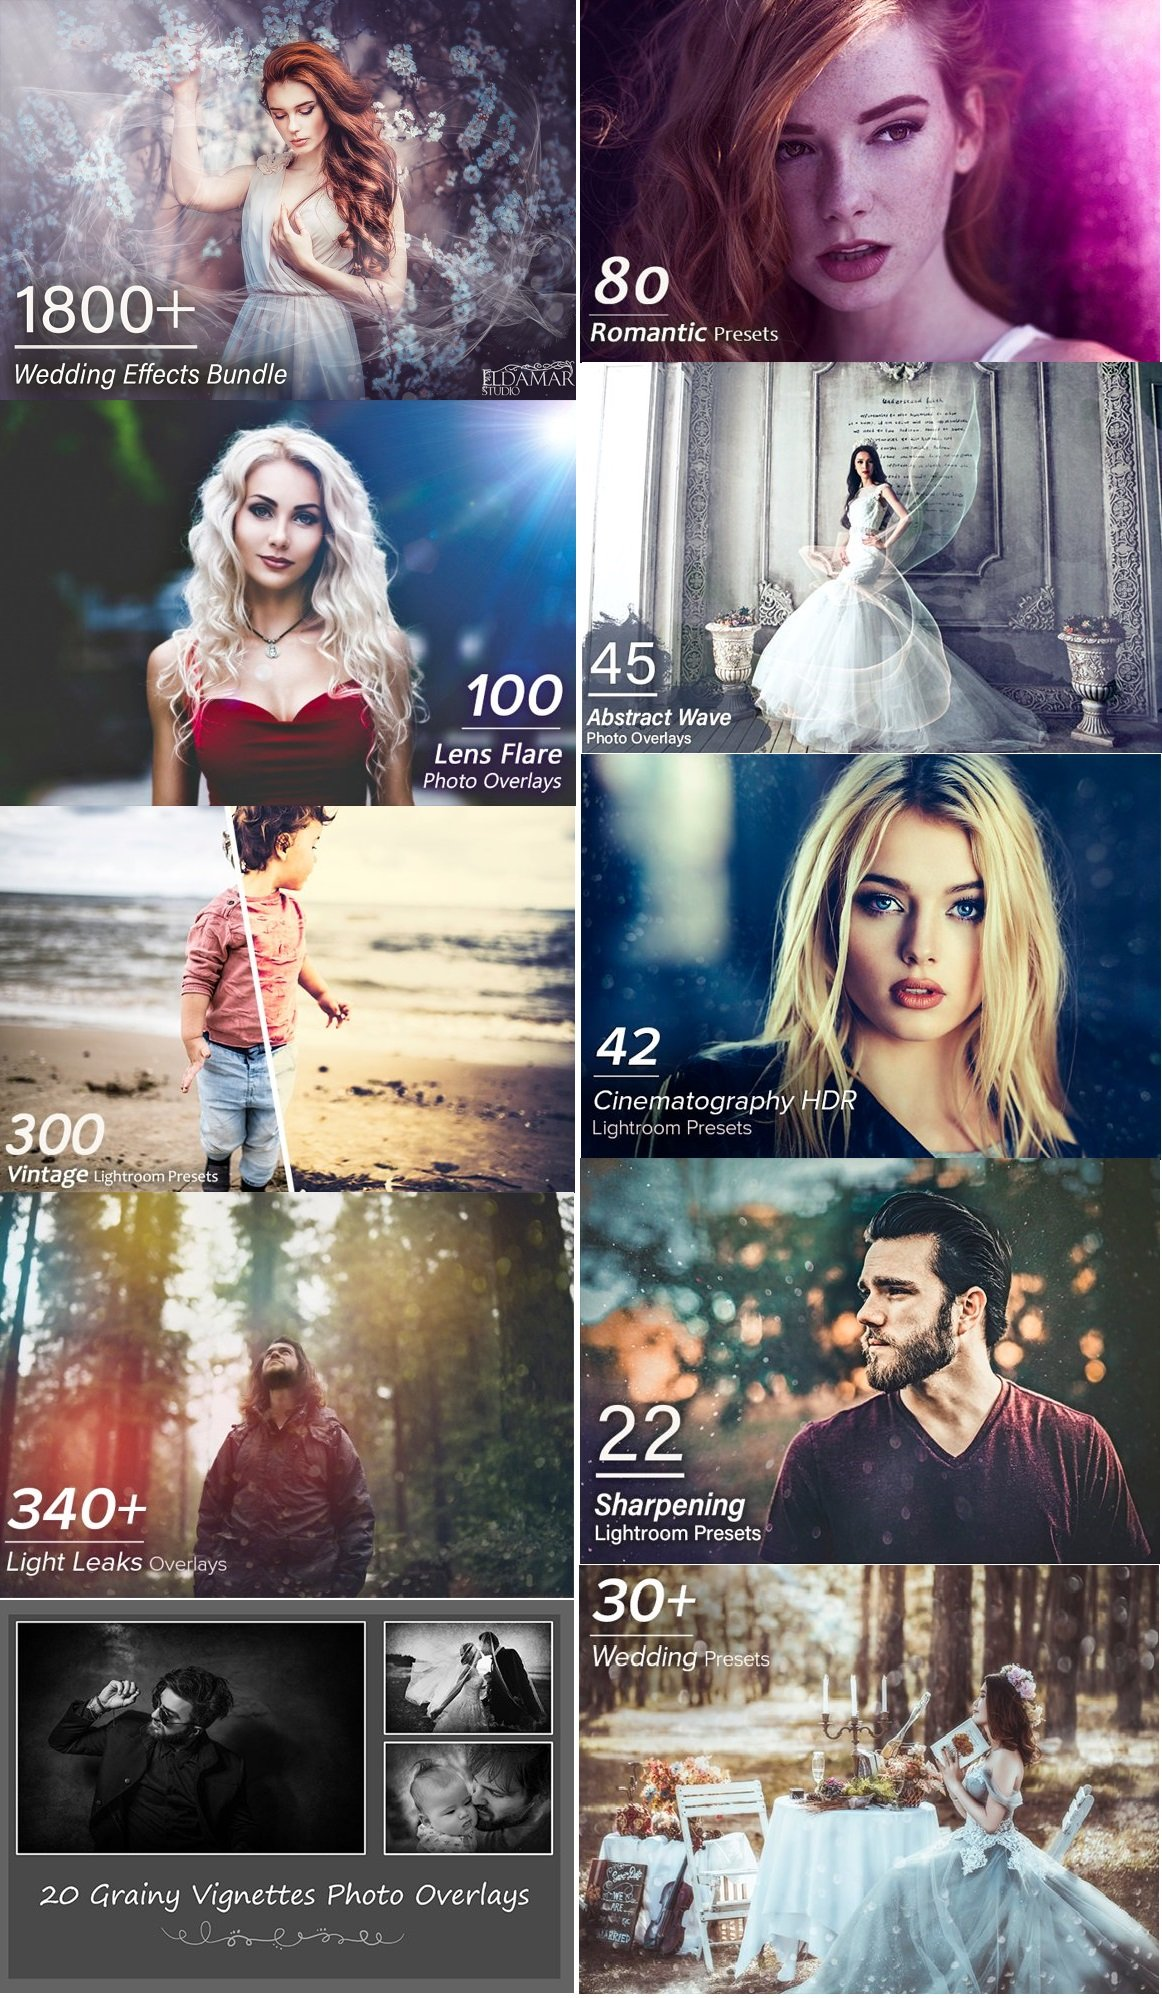 Download 1800+ Wedding Effects Bundle 3062575 - SoftArchive